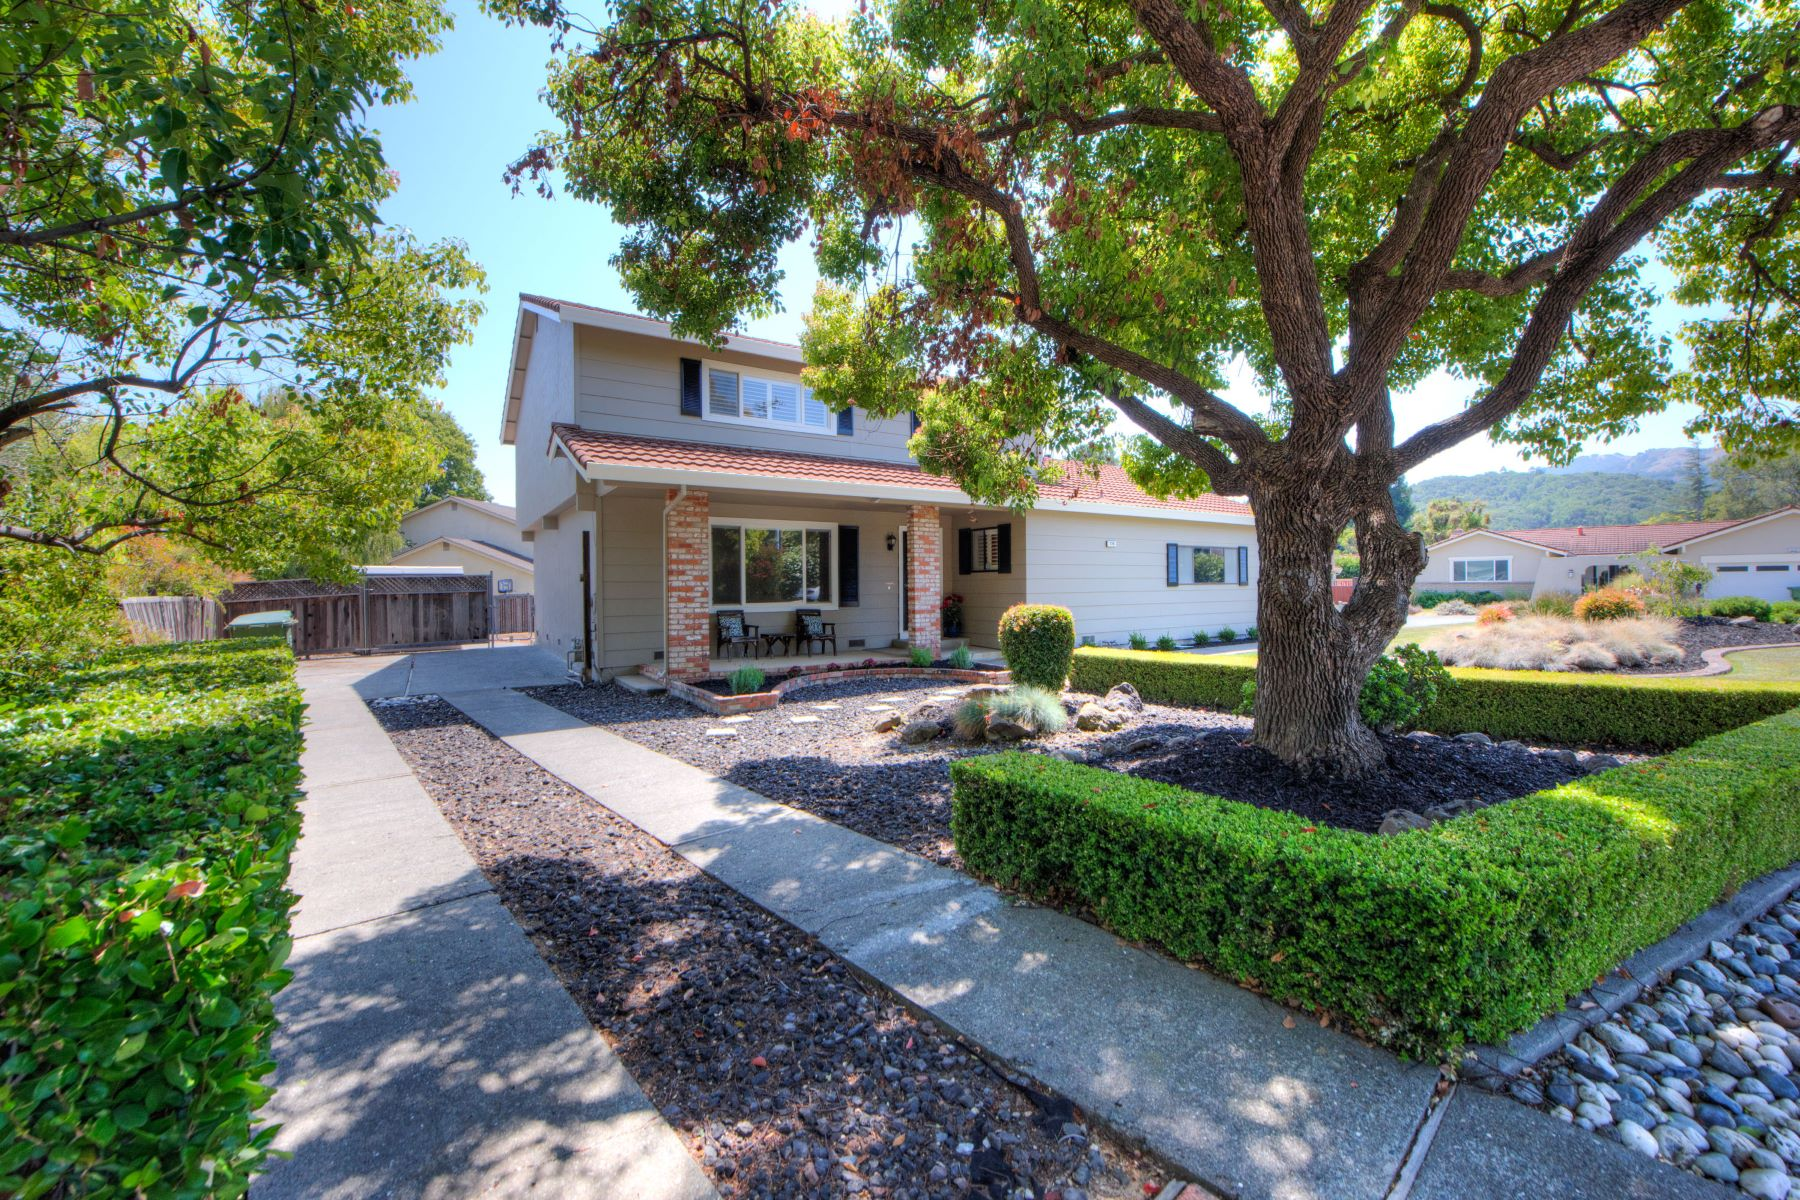 Single Family Home for Sale at Desirable Pleasant Valley Neighborhood! 724 Sutro Ave Novato, California 94947 United States